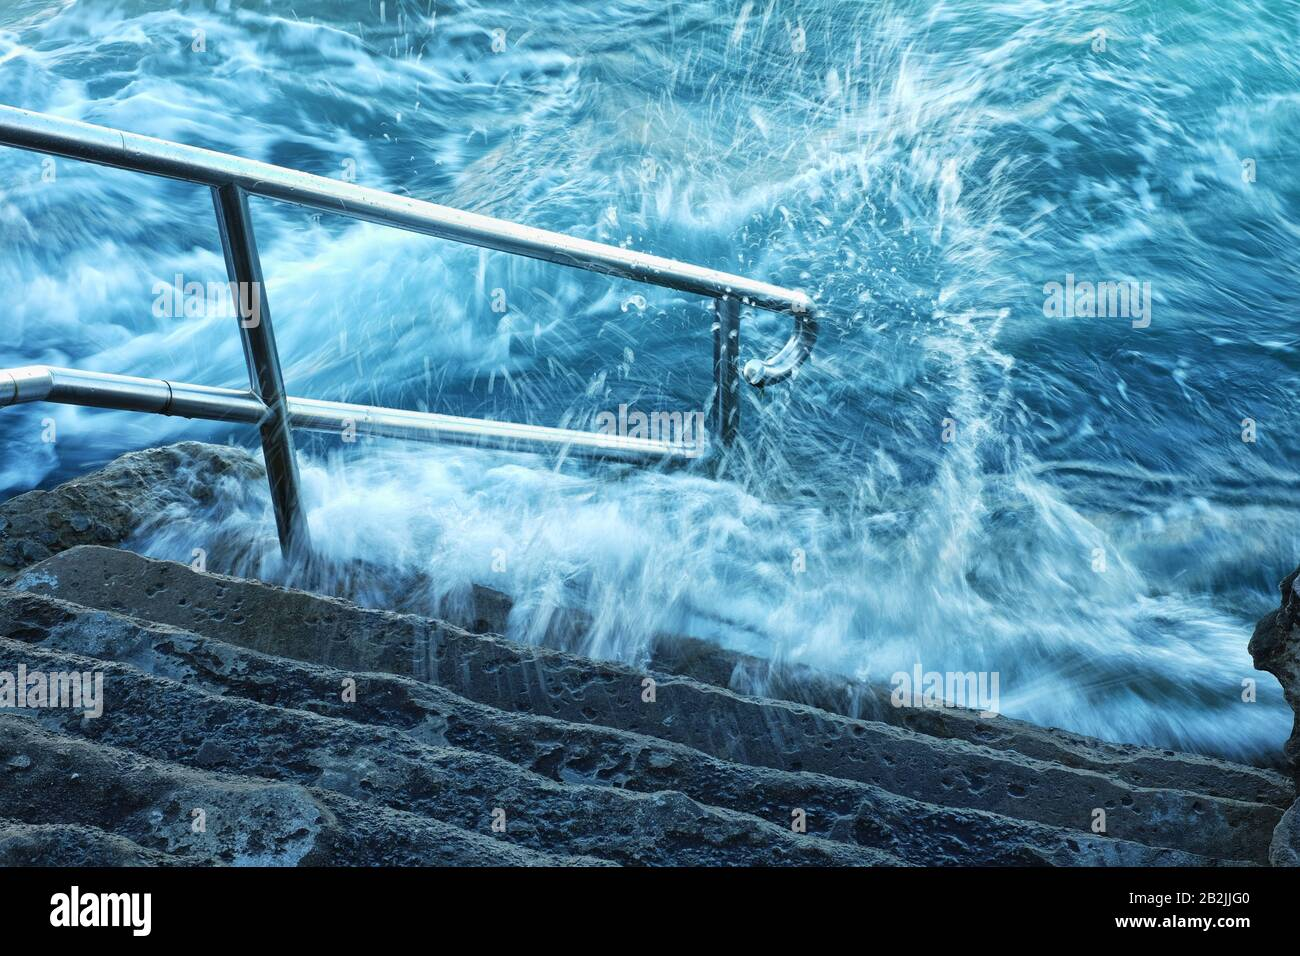 Ocean white water splashes, foams and surges over the steps and handrail of Giles Bathes, ocean rock pool Coogee Bay, Sydney, Australia Stock Photo